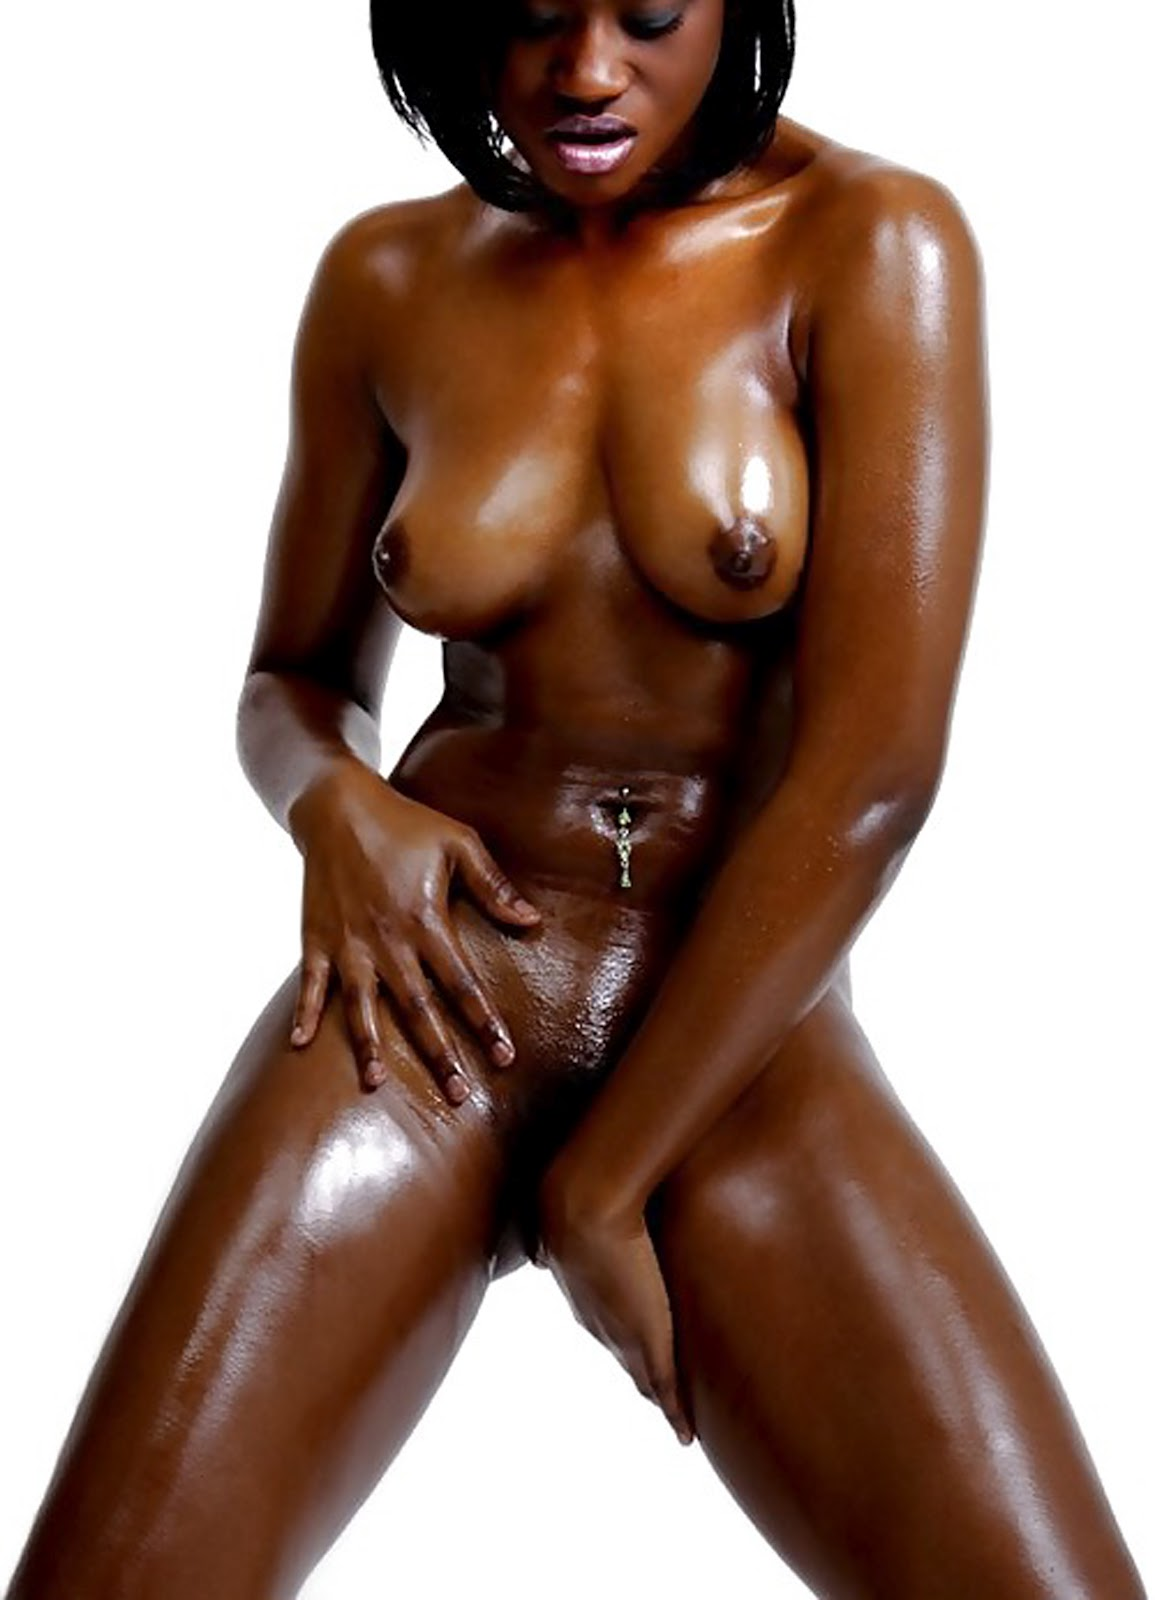 Oiled skinny black girls nude know, you